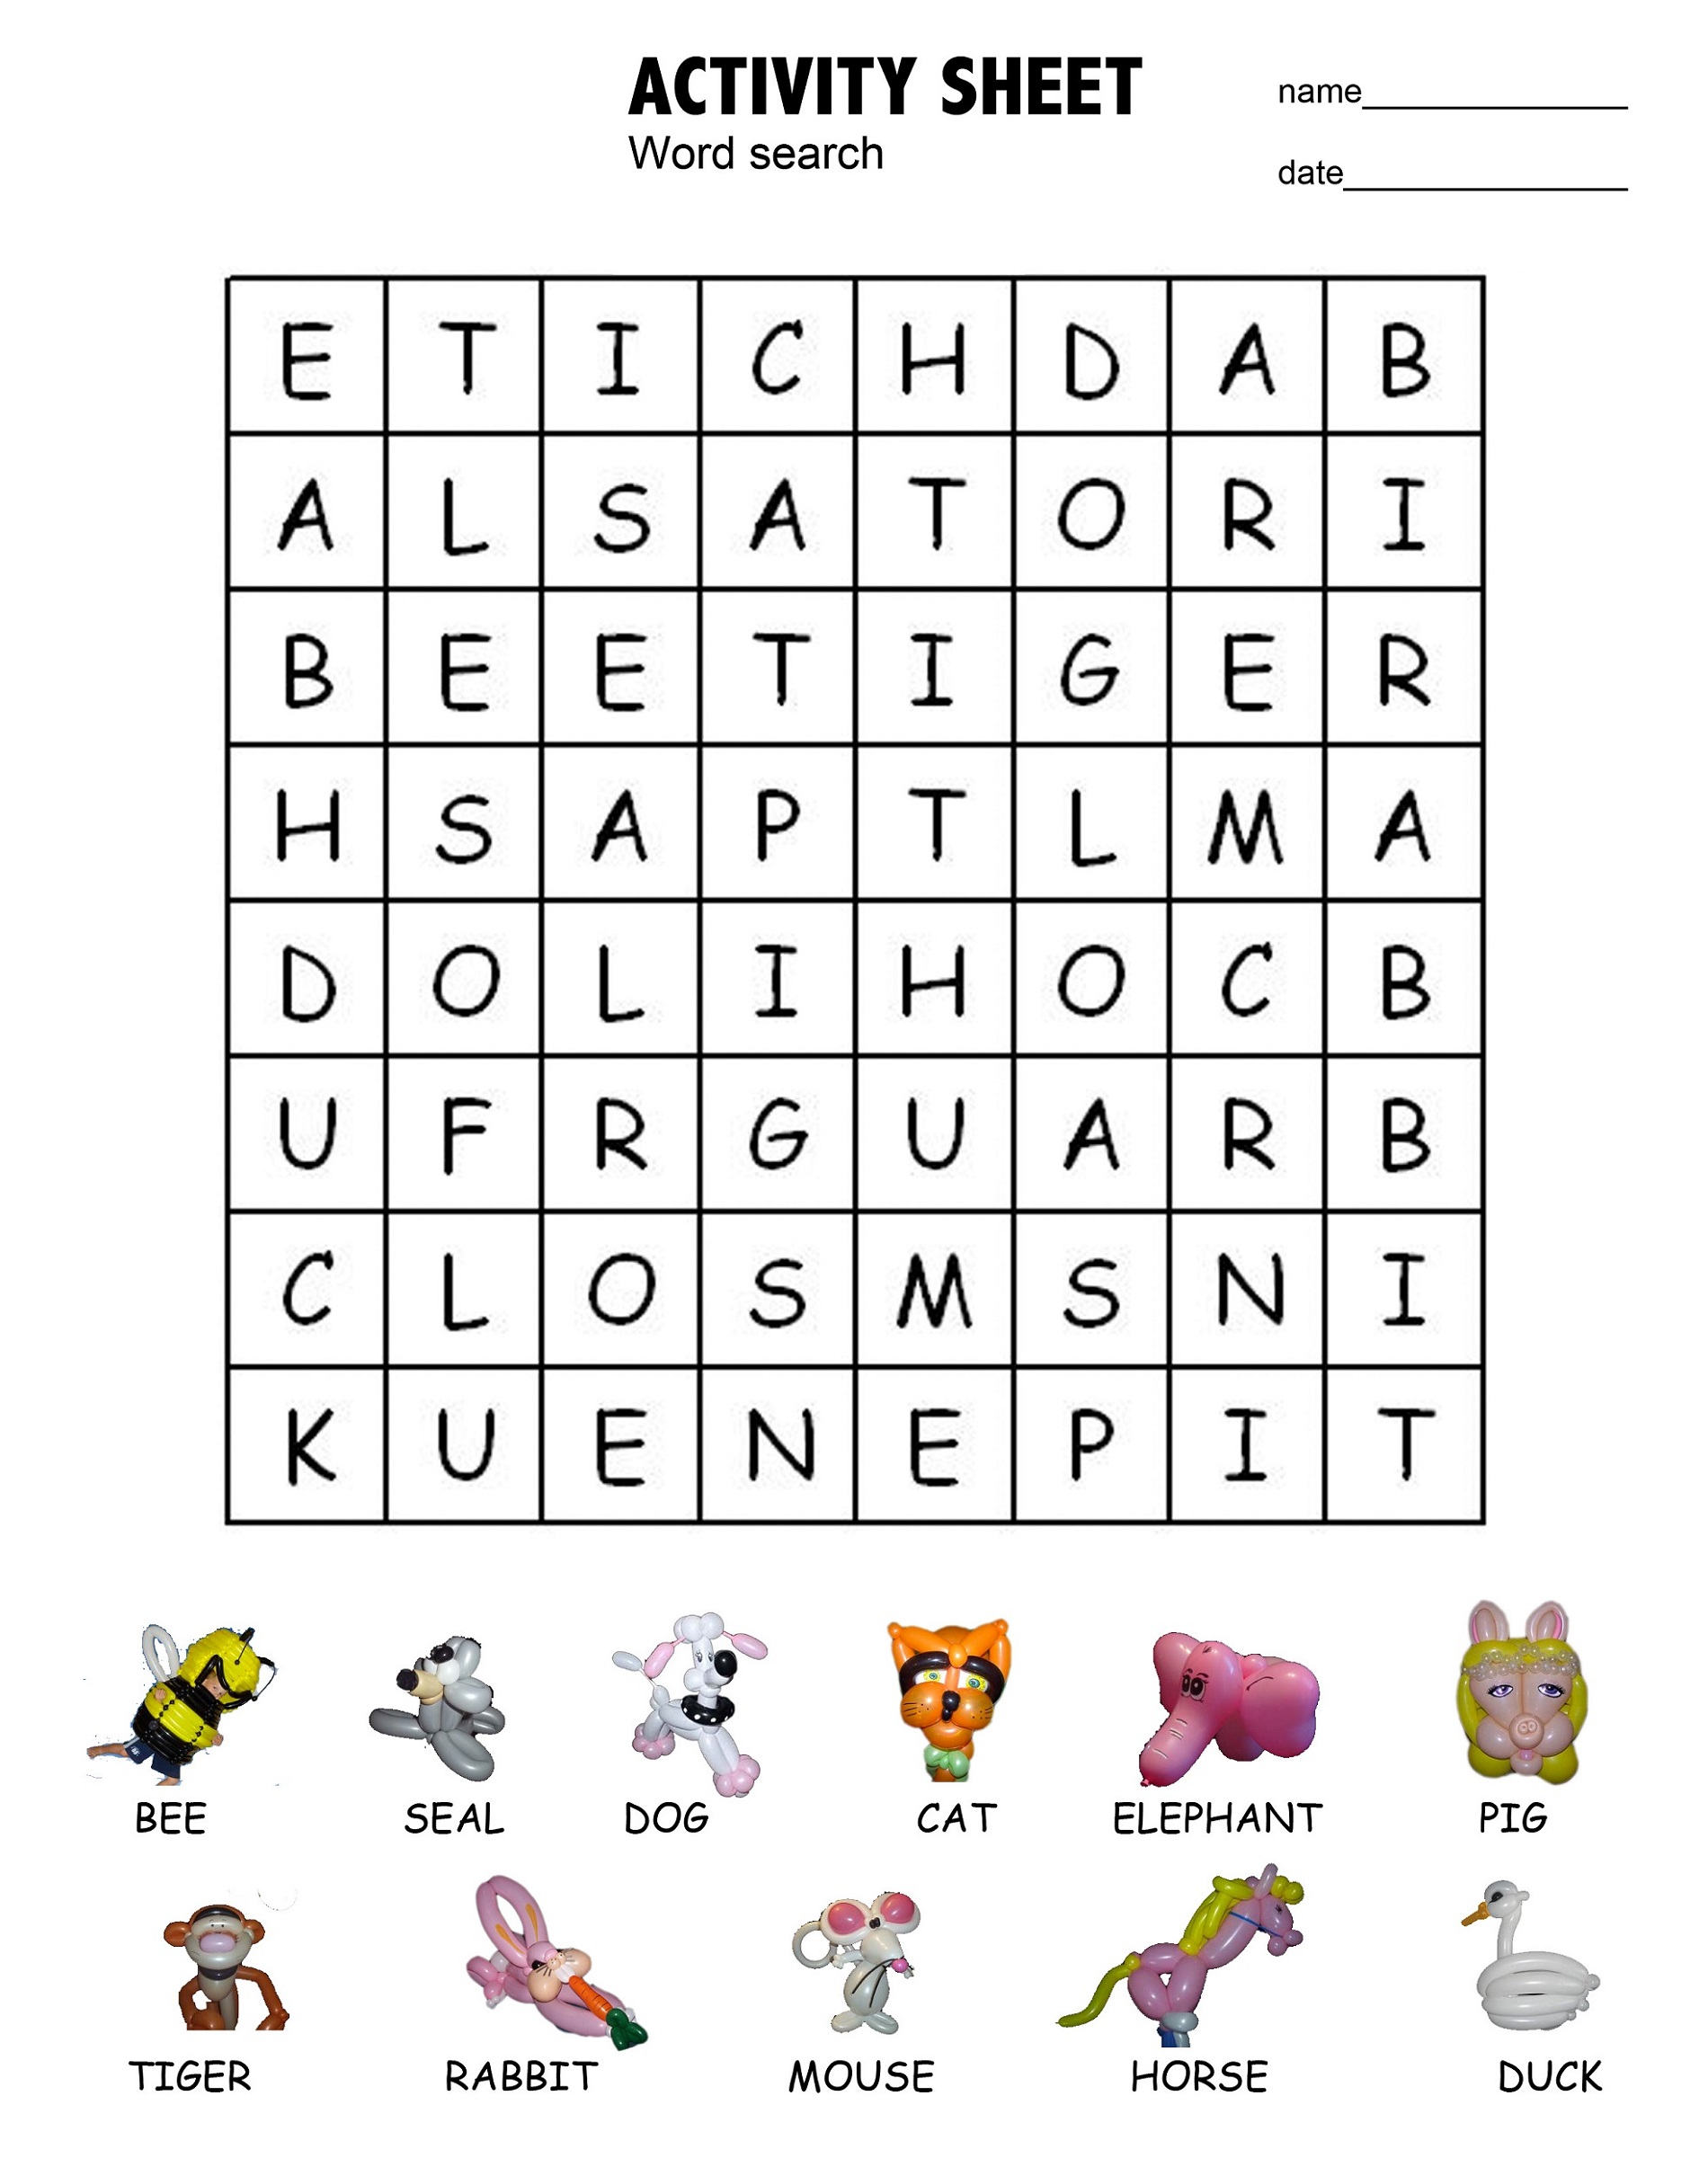 Word Search For Kids With Fun Themes